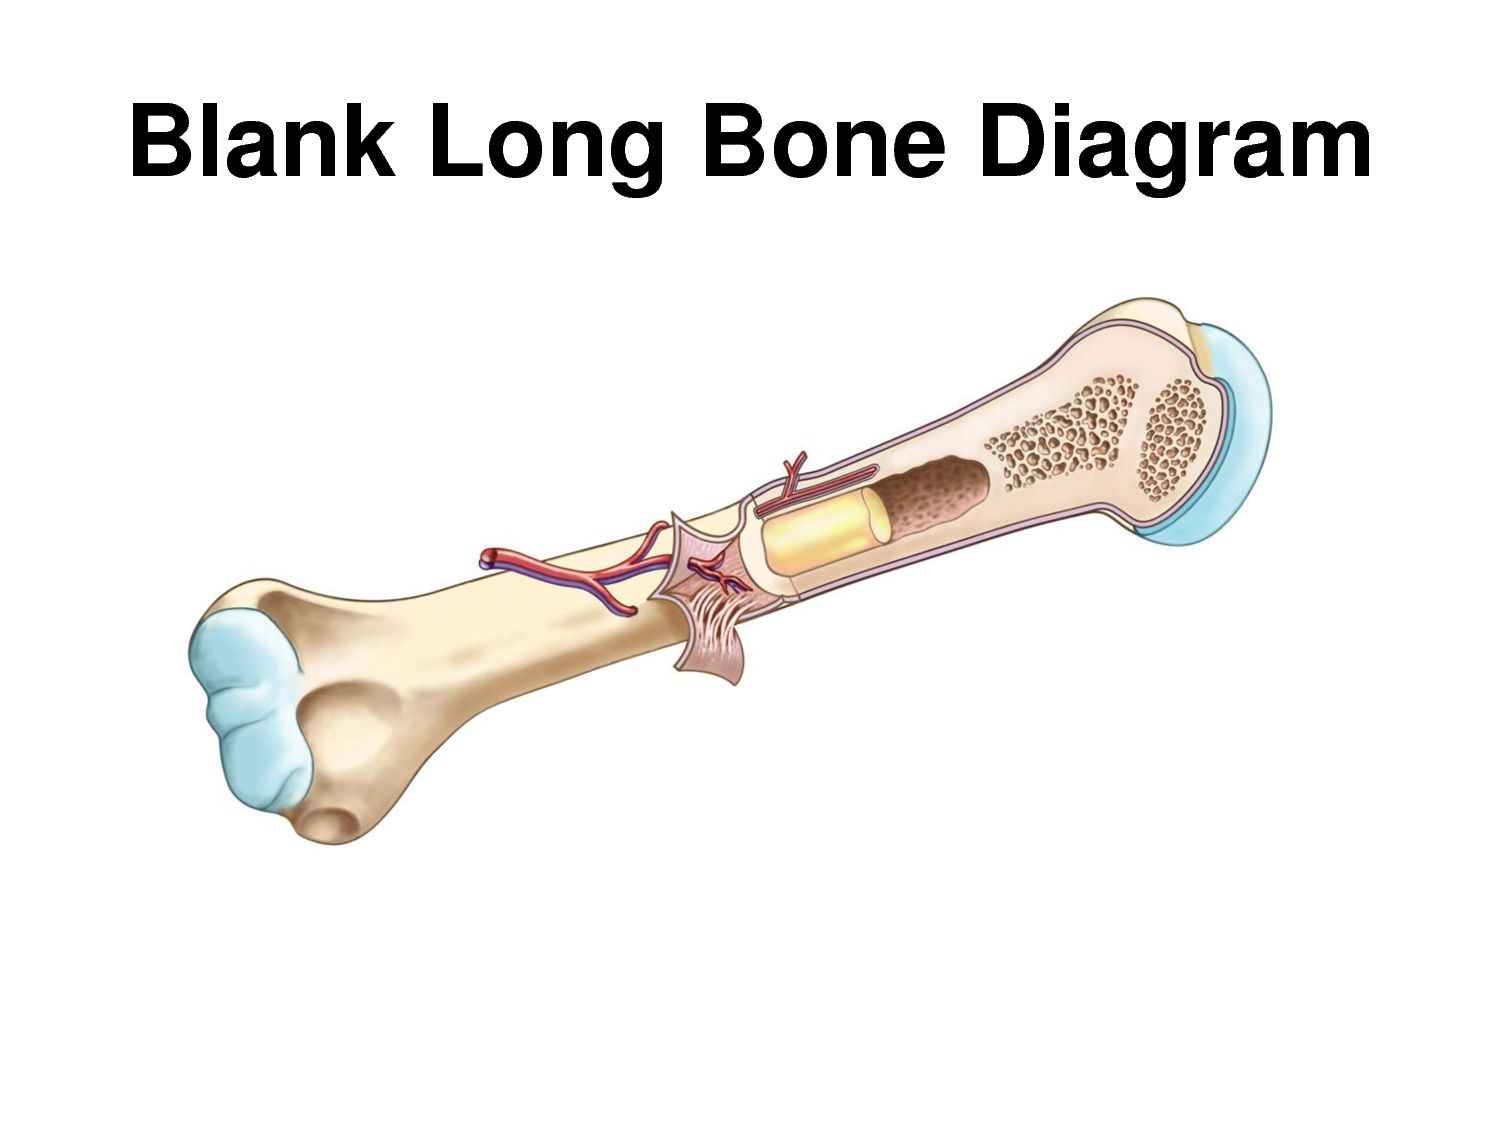 foot bone diagram blank world of reference. Black Bedroom Furniture Sets. Home Design Ideas